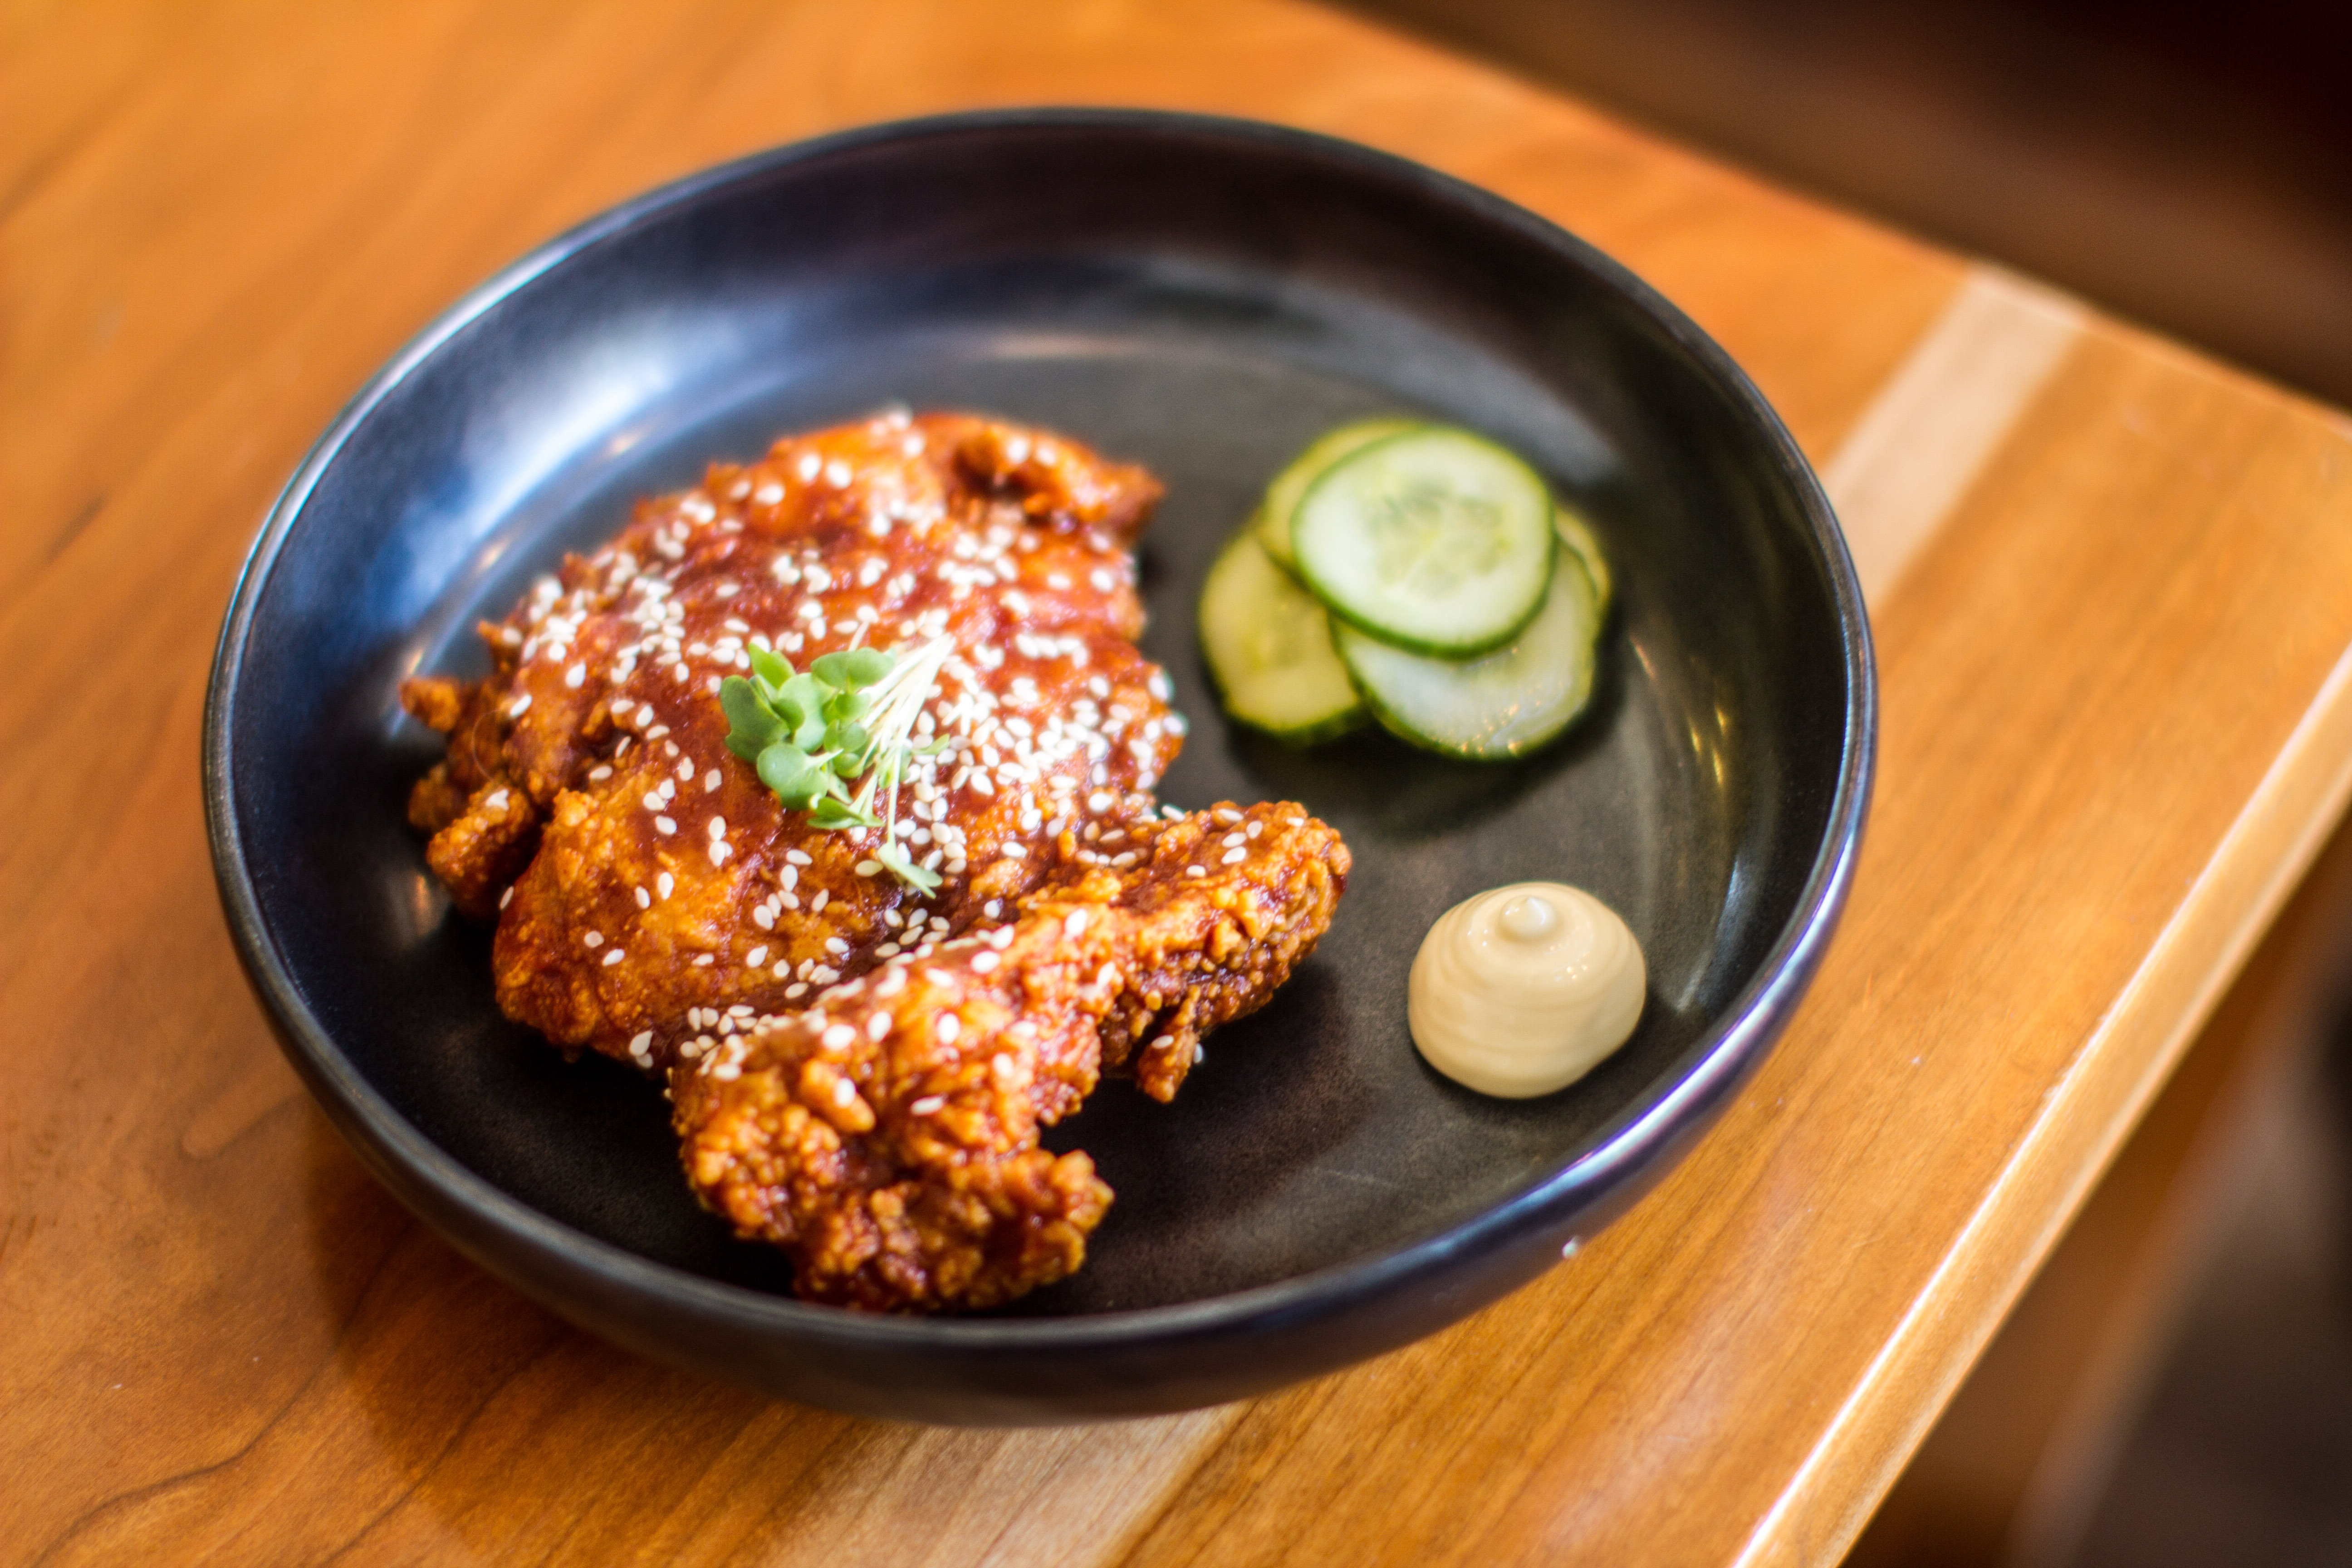 &quot;We are still talking about the gochujang glazed, sesame seed speckled karaage chicken that was intensely crunchy and yet so very juicy.&quot; (Image: Farrah Skeiky)<p></p>